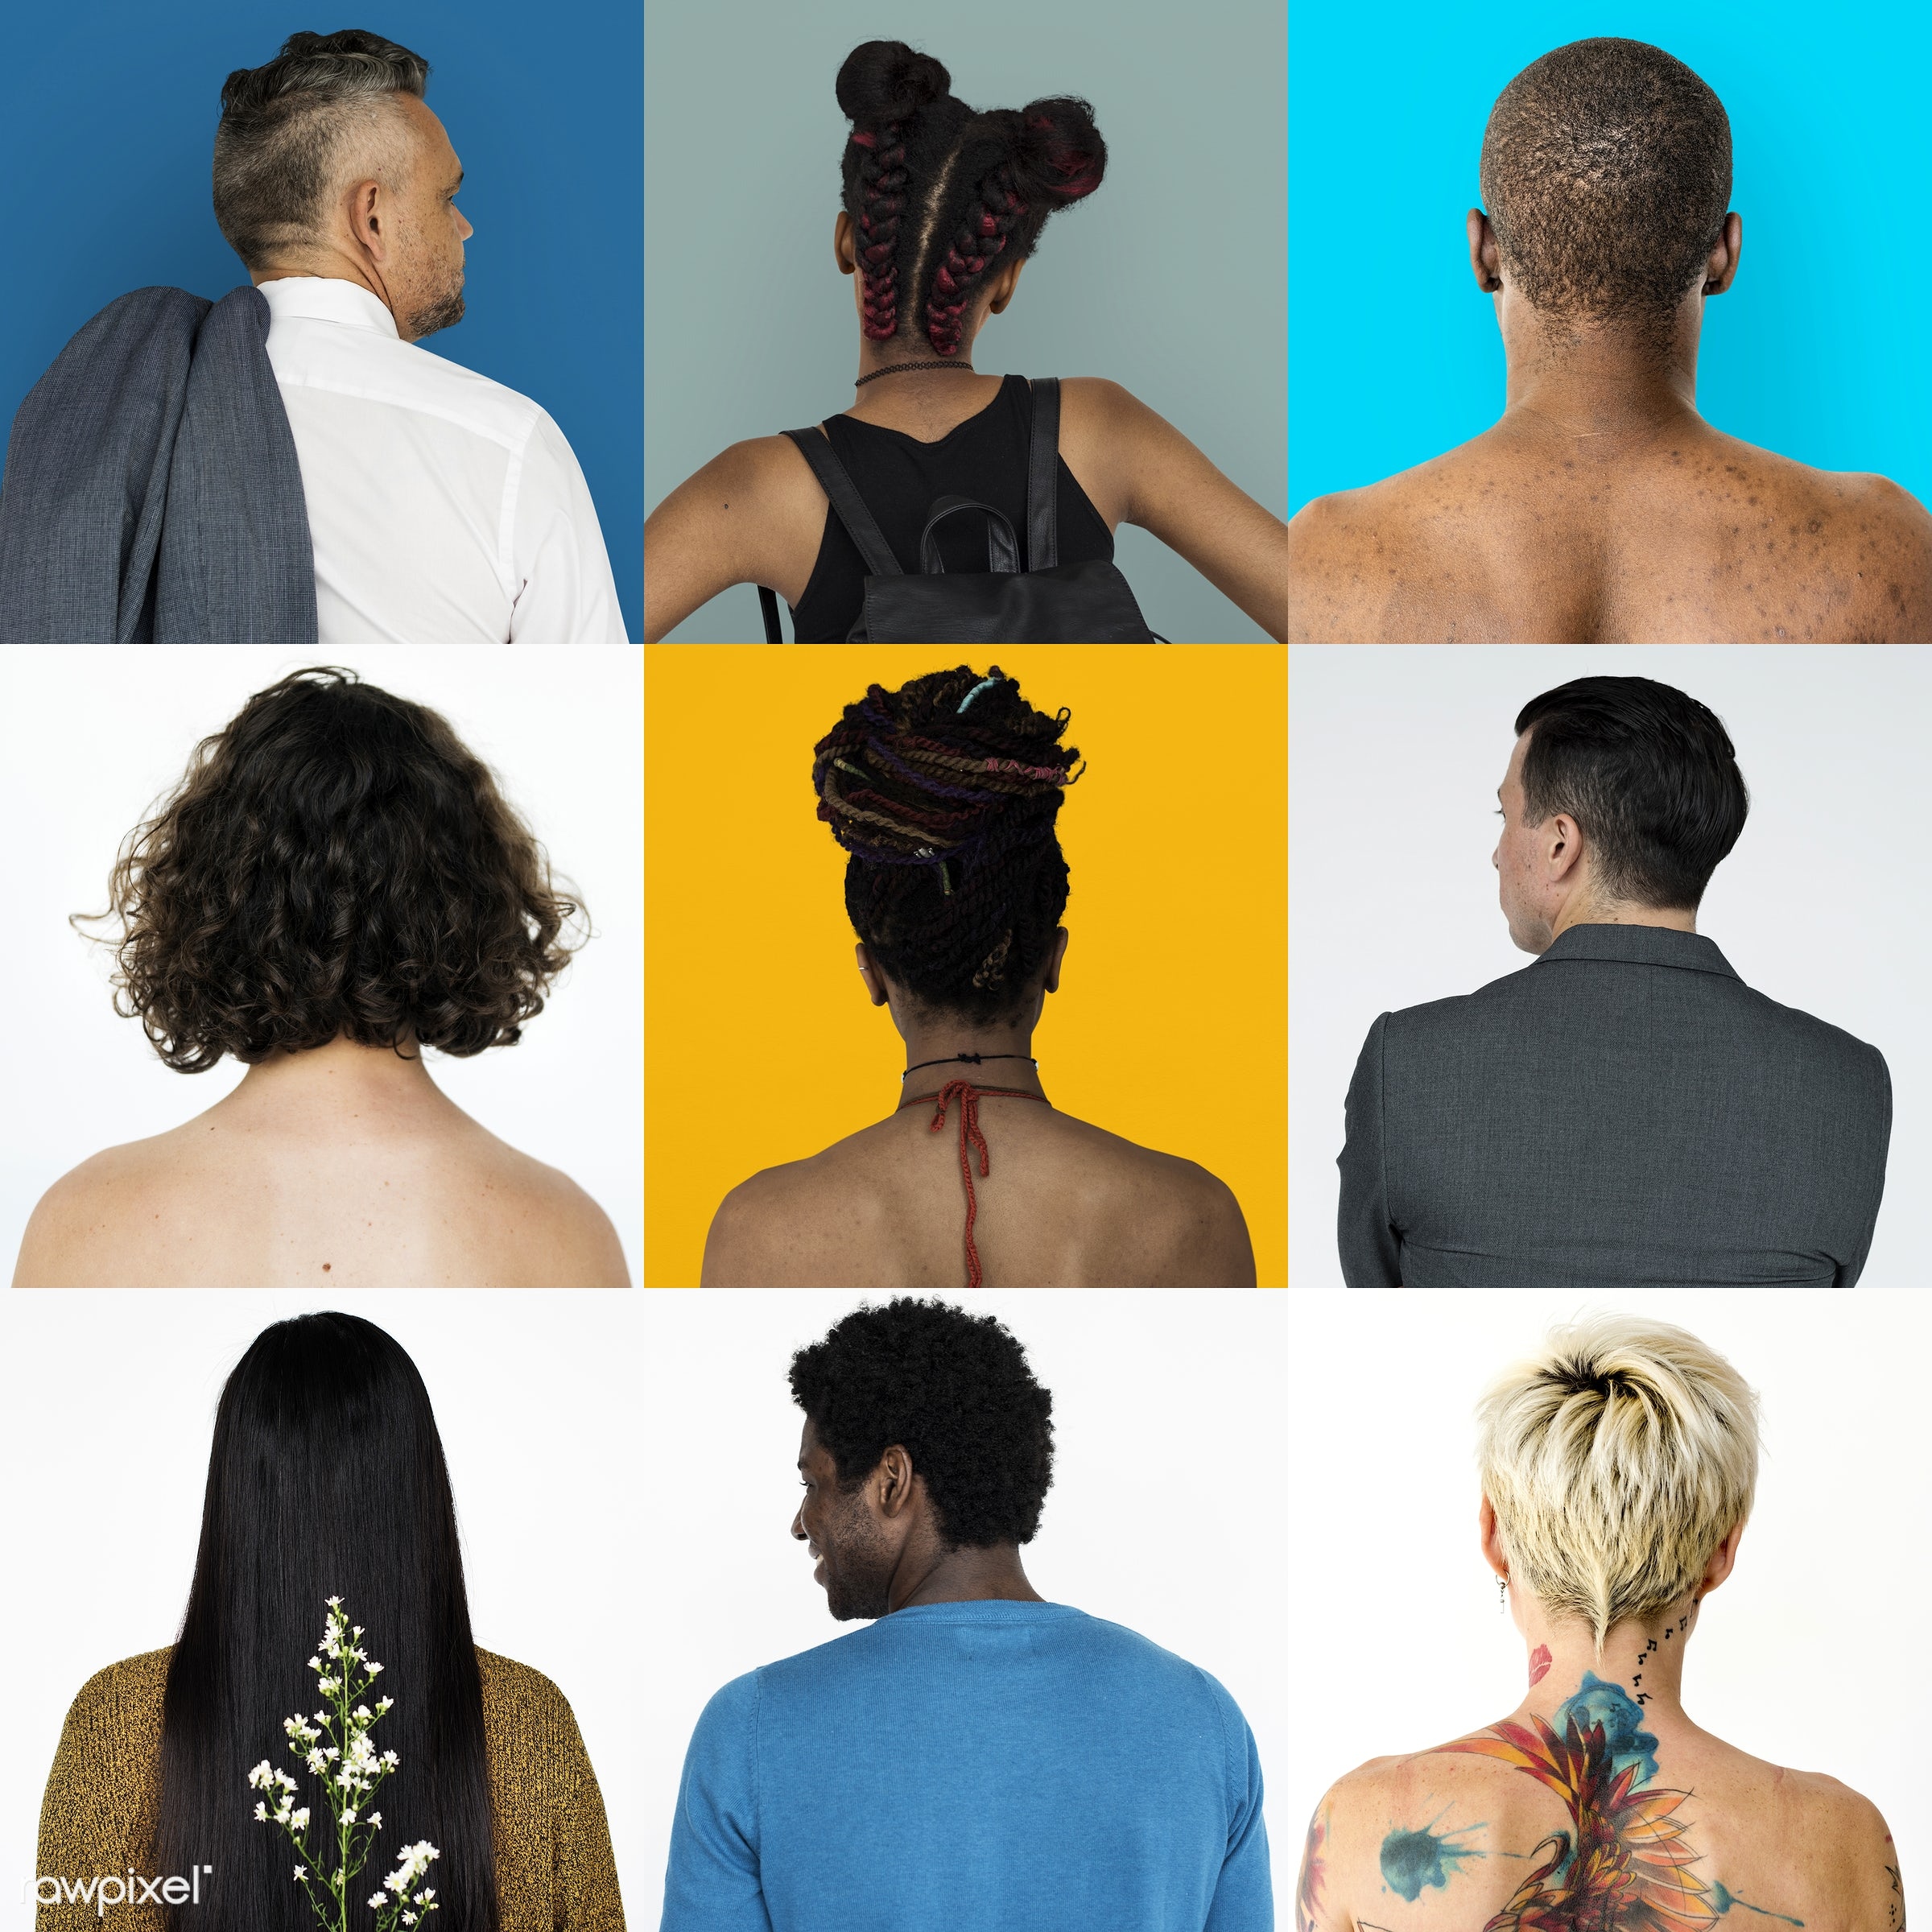 different, studio, diverse, variation, collages, people, race, style, casual, gender, tattoo, isolated, diversity, ethnic,...